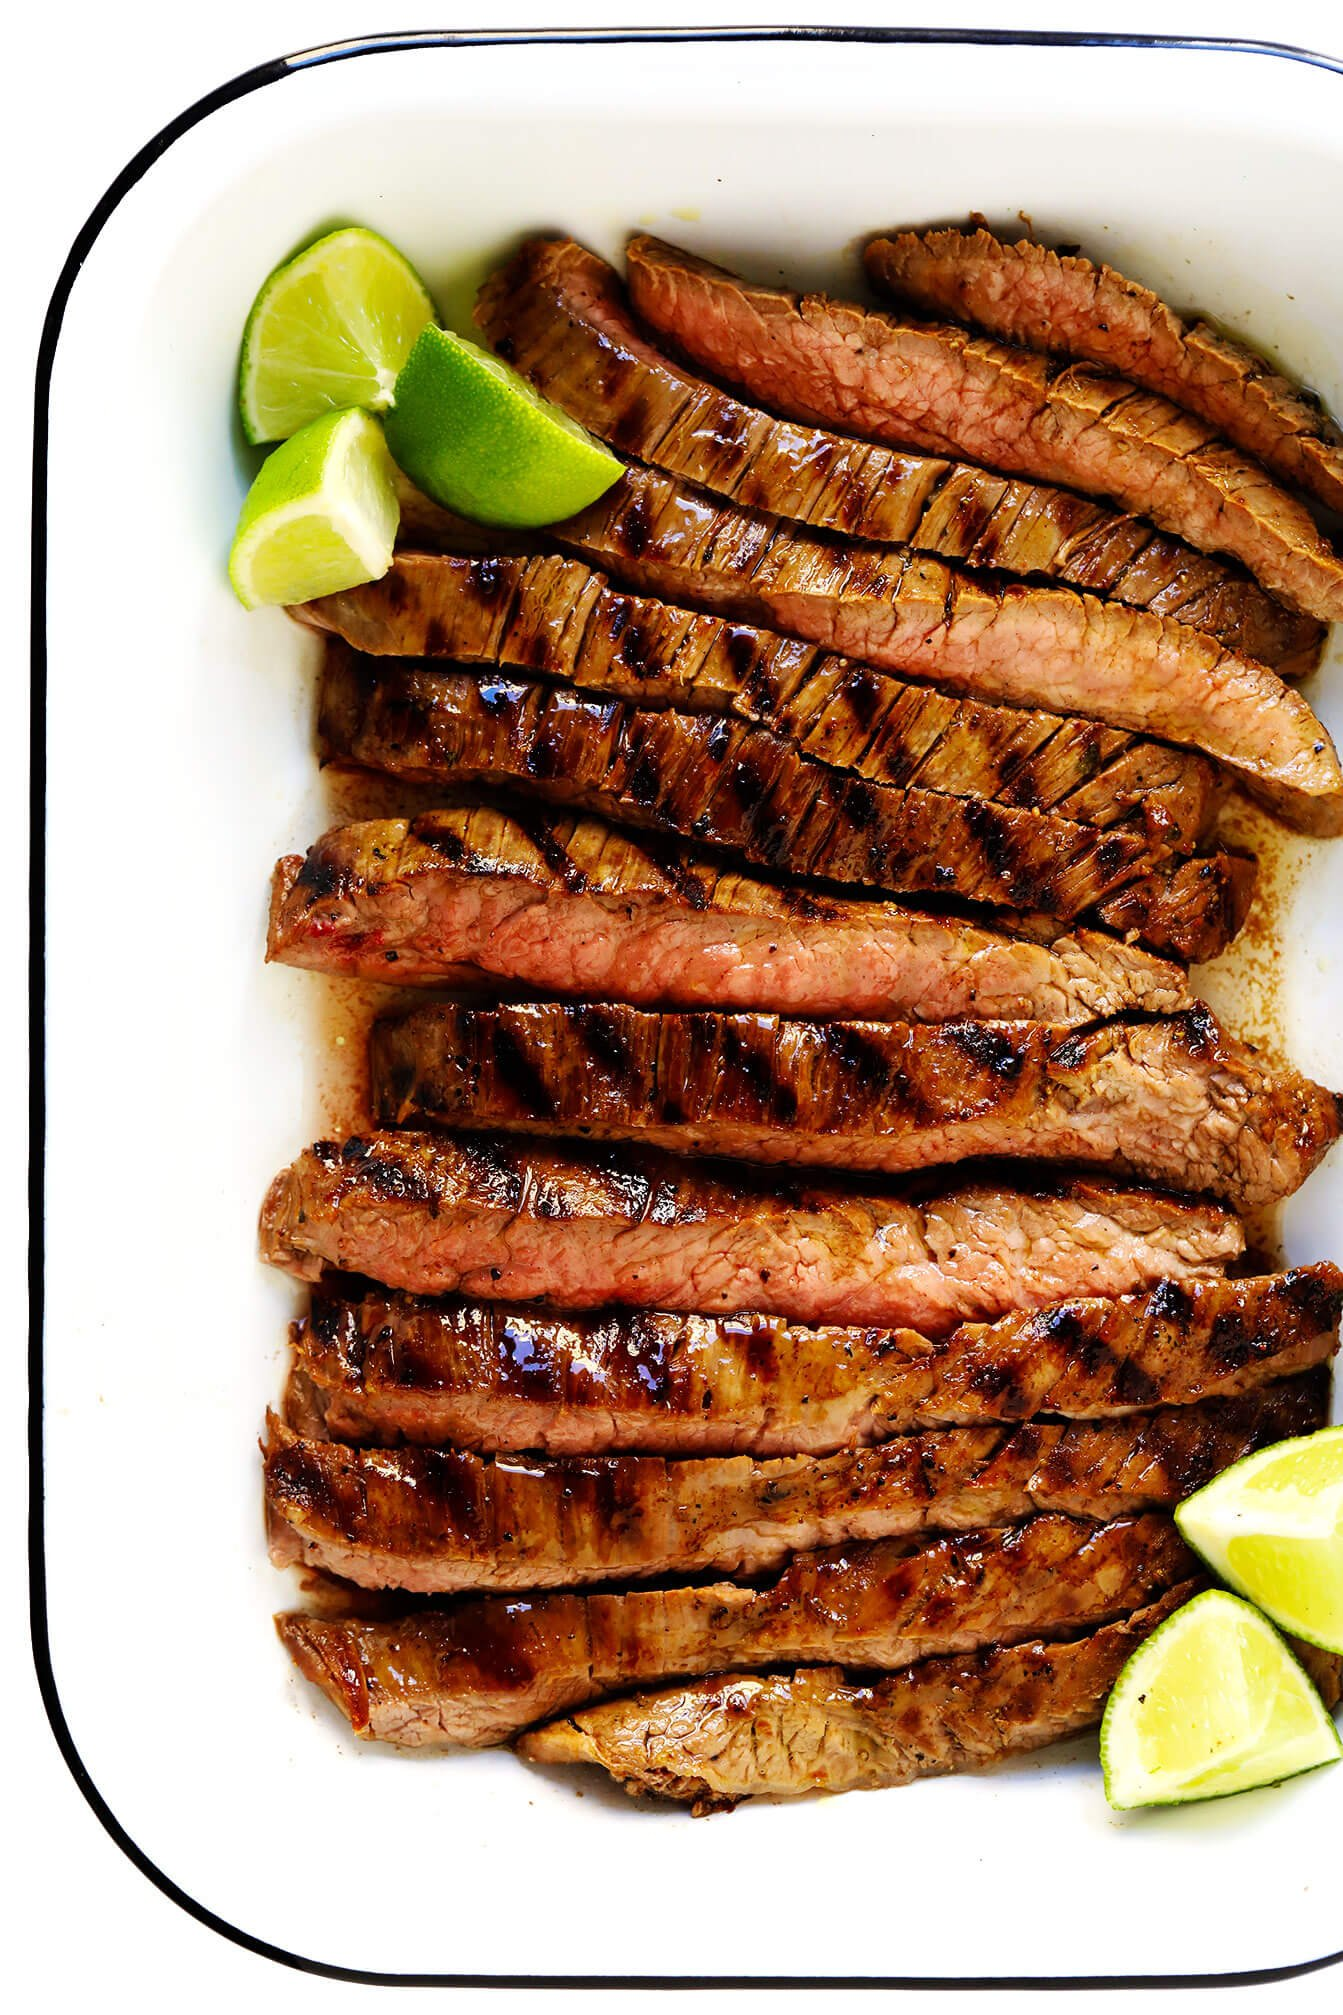 Carne Asada (Steak grillé mexicain)